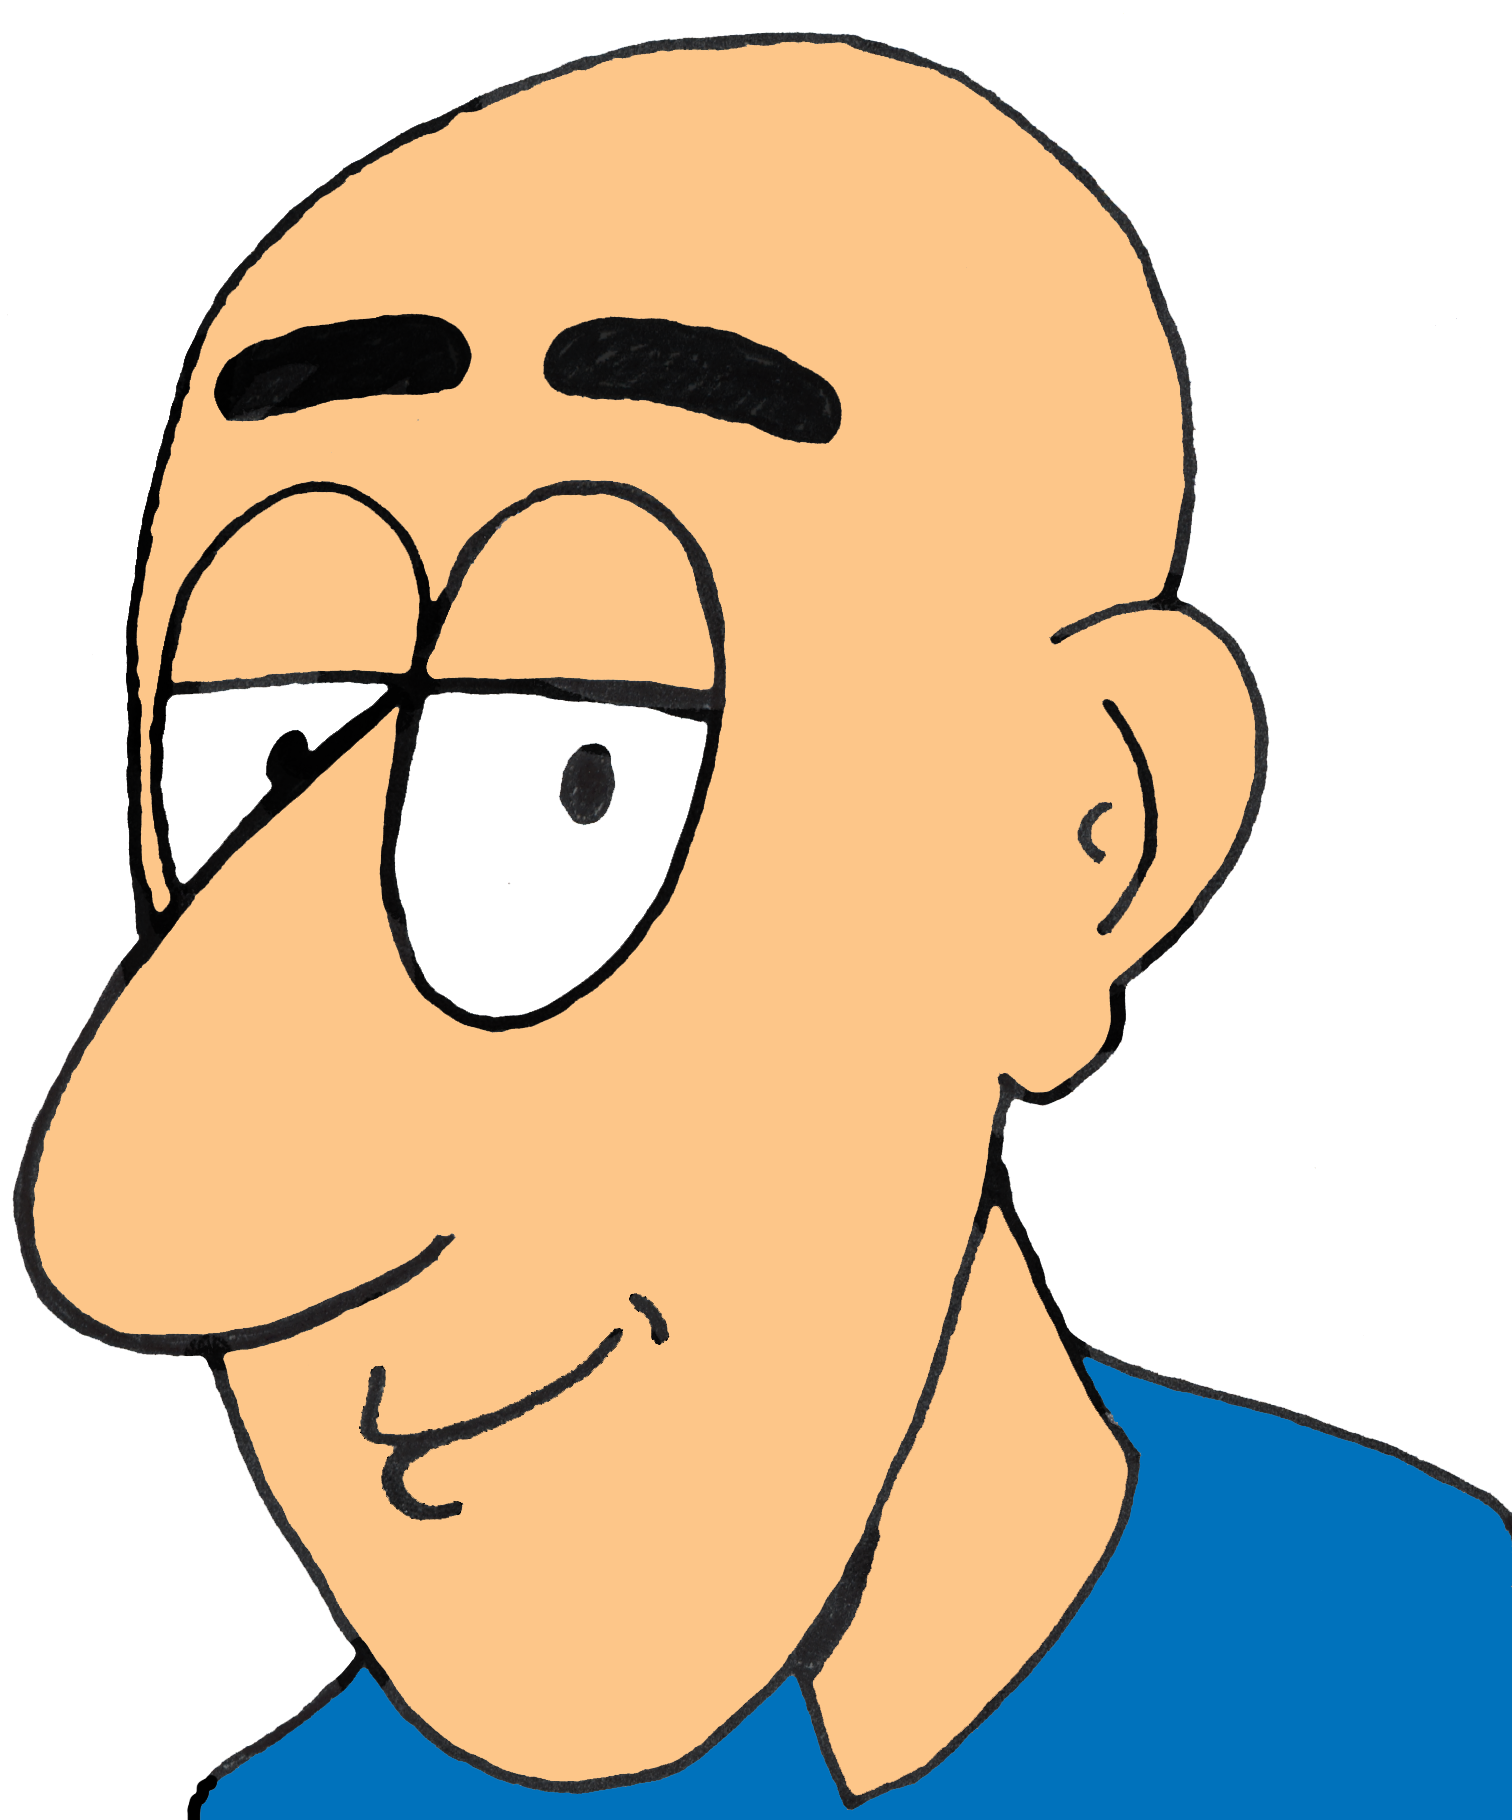 Bald Man Cartoon Clipart.